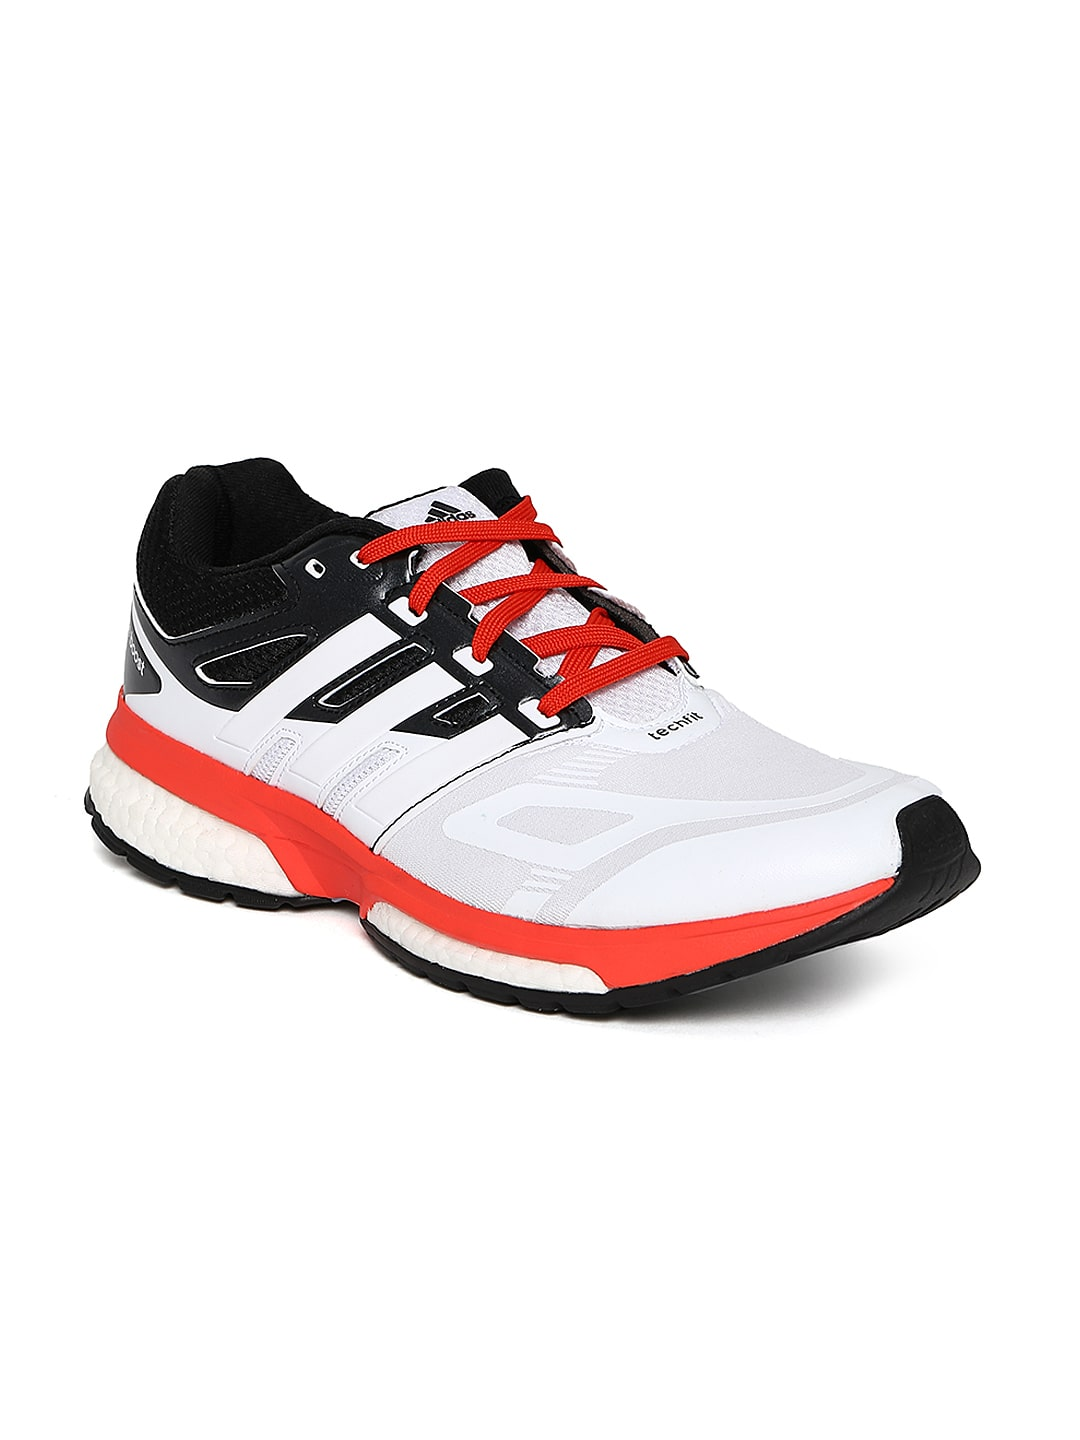 Adidas m18883 Men White Response Boost Techfit M Running Shoes ... dcdf18ff5